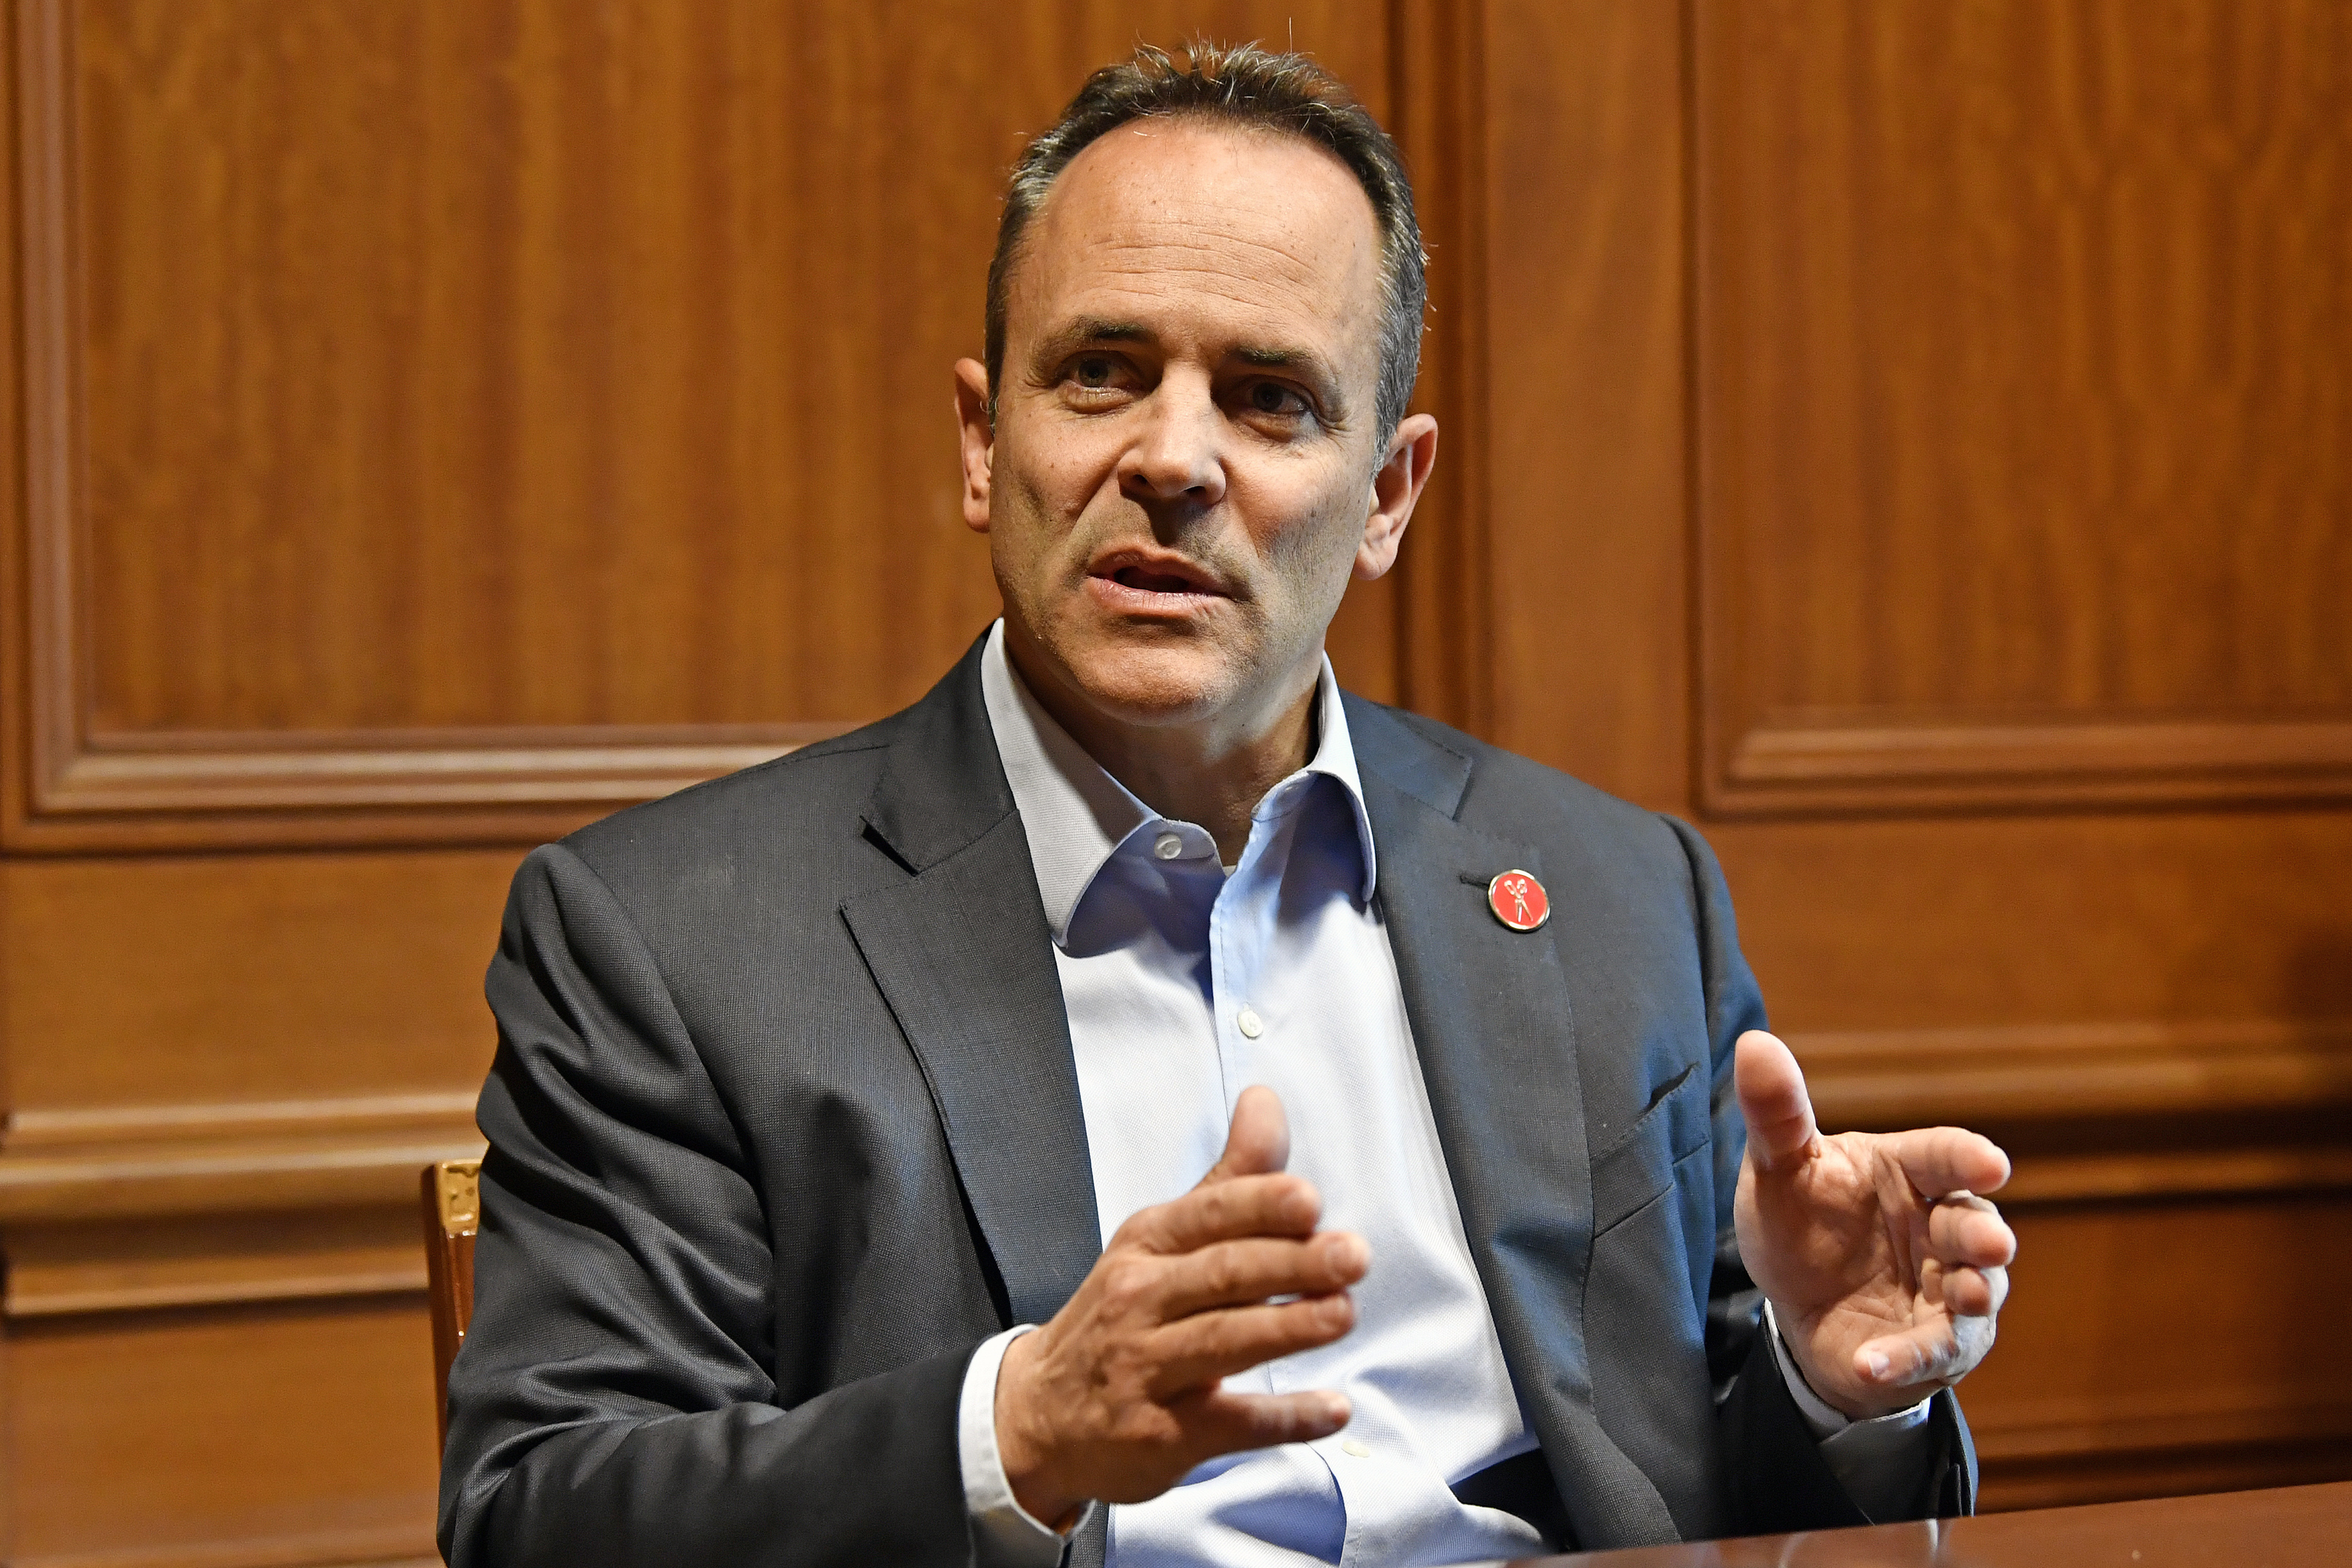 Kentucky Governor Matt Bevin discusses the upcoming recanvass of the Governor's race in Frankfort, Ky., Wednesday, Nov. 13, 2019.